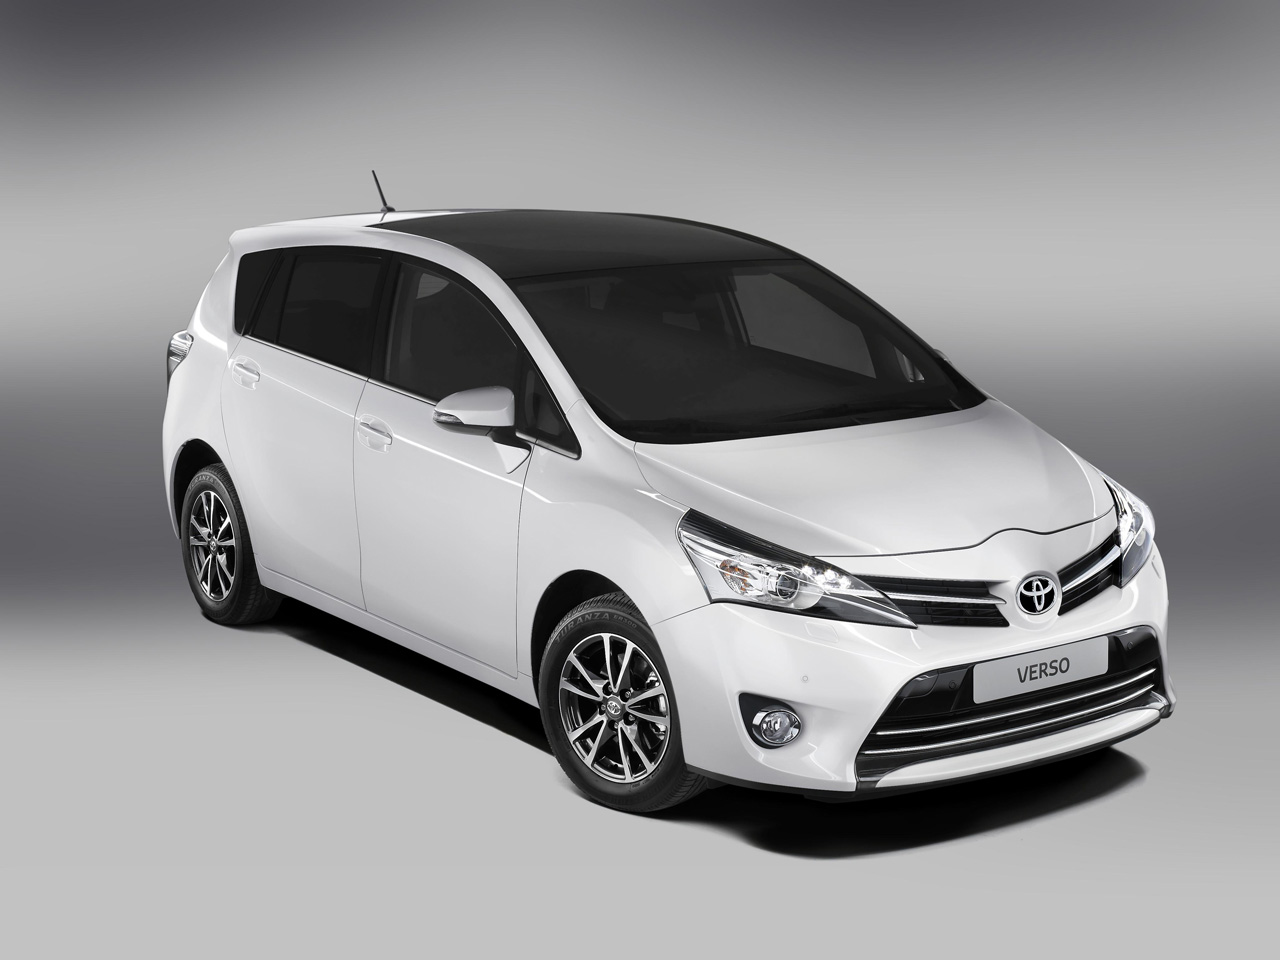 2014 Toyota Verso News And Information Conceptcarz Com